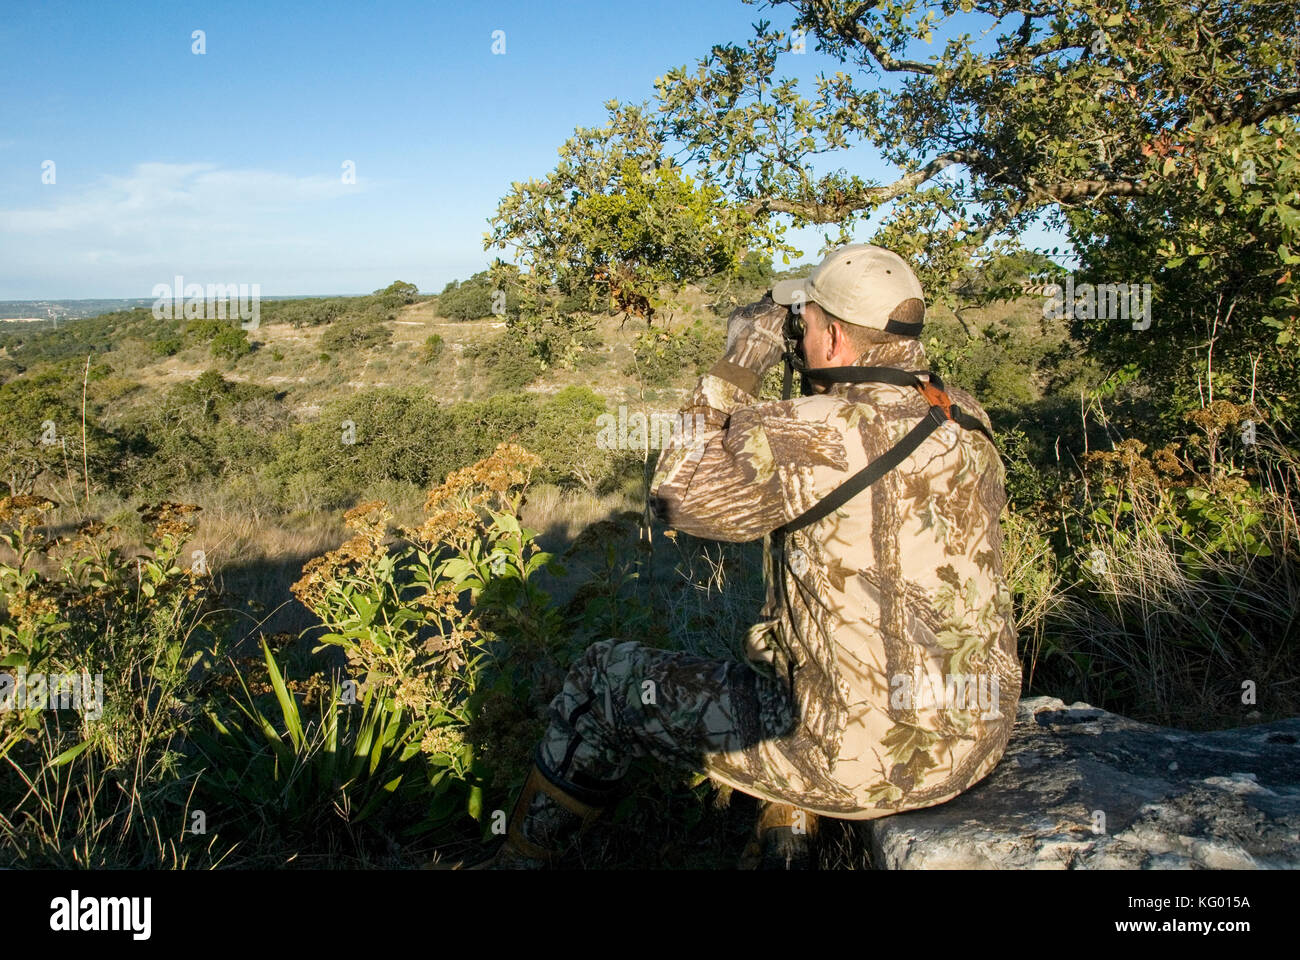 A LONE HUNTER LOOKS FOR WHITETAIL DEER IN THE TEXAS HILL COUNTRY - Stock Image